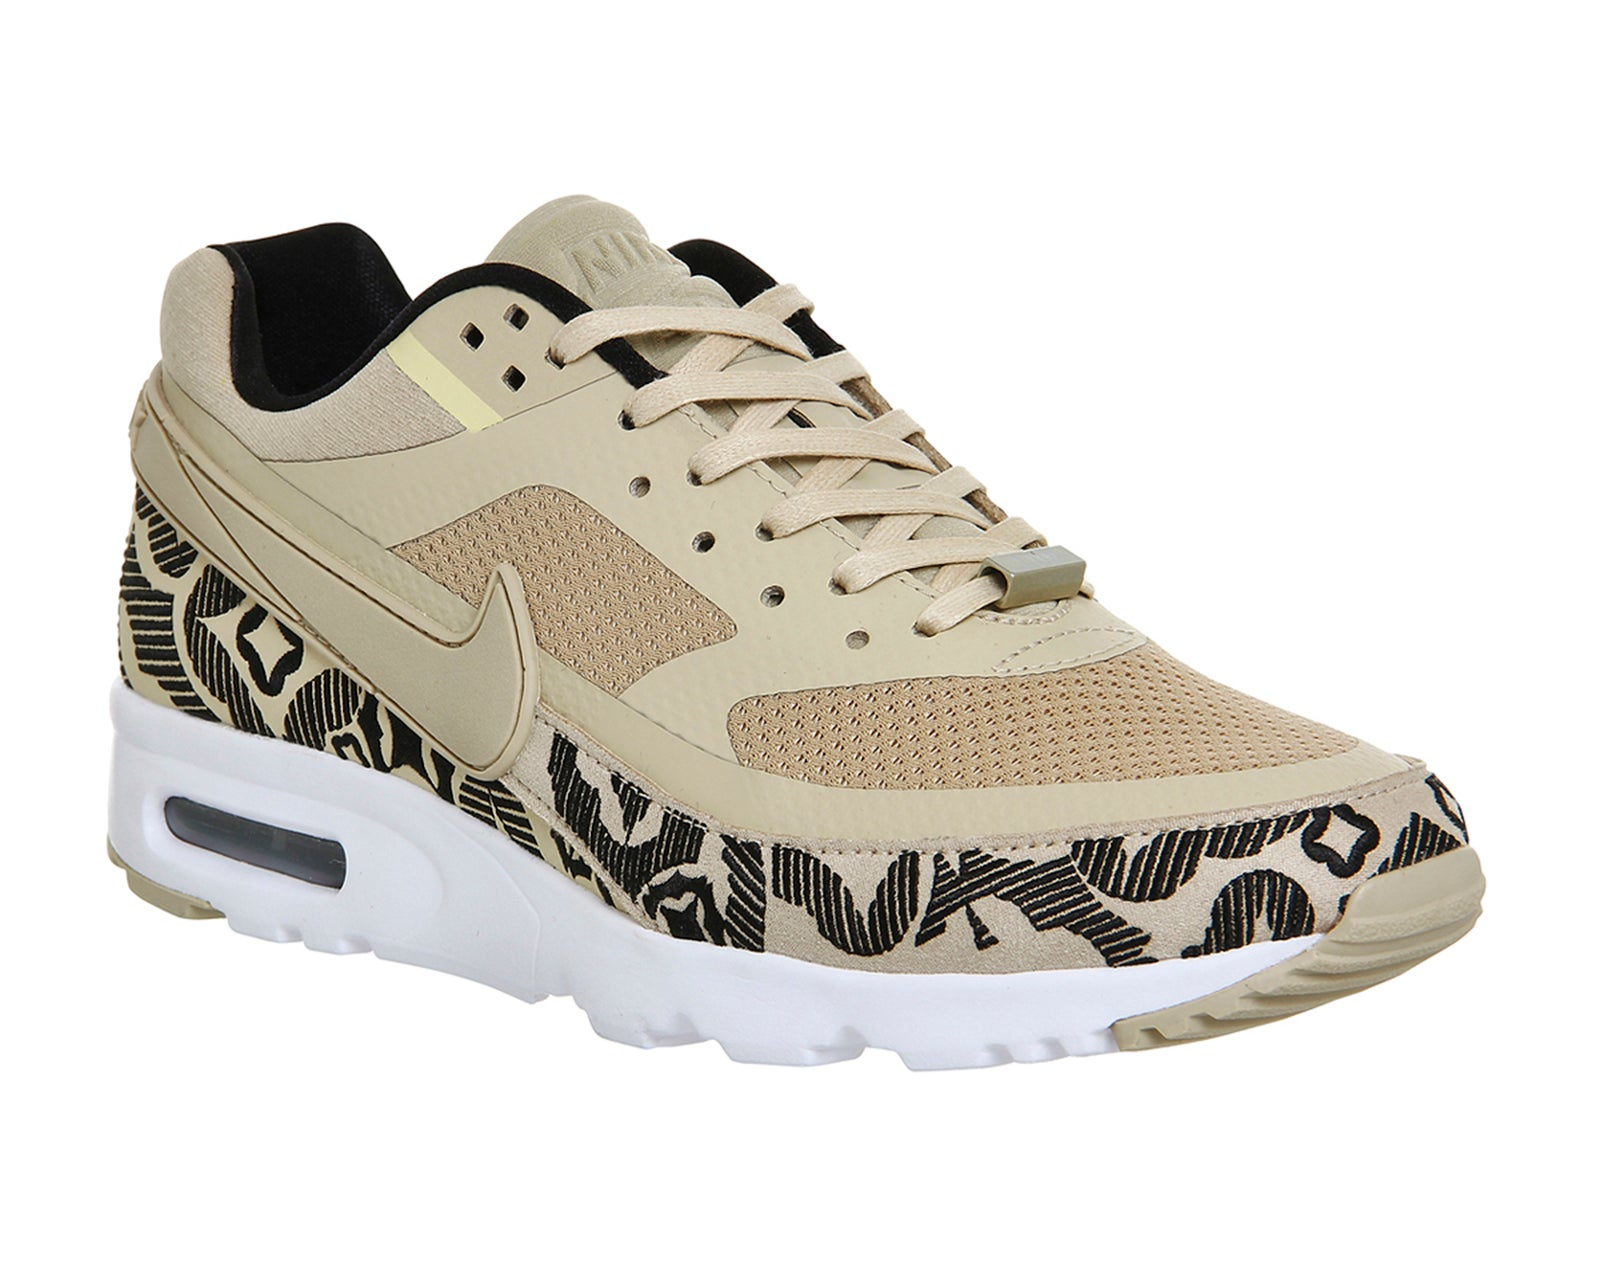 Air Max Day 2016: The best styles for